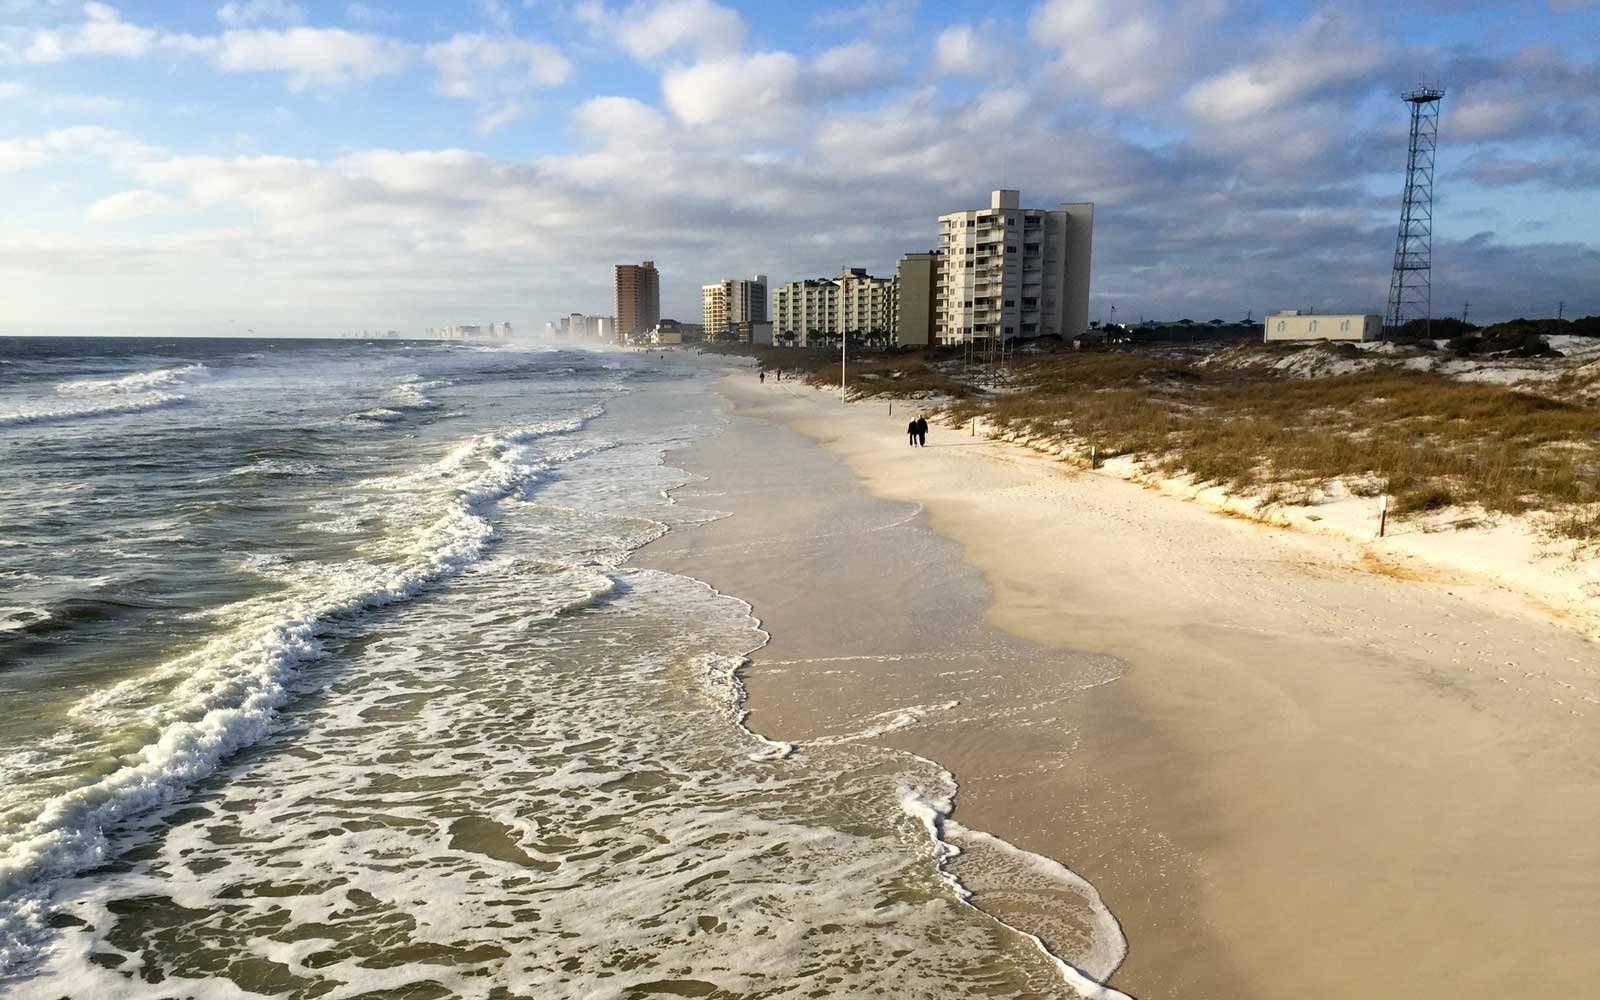 St. Andrews State Park in Pensacola Beach, Fla., one of the highlight beaches of the Florida panhandle.